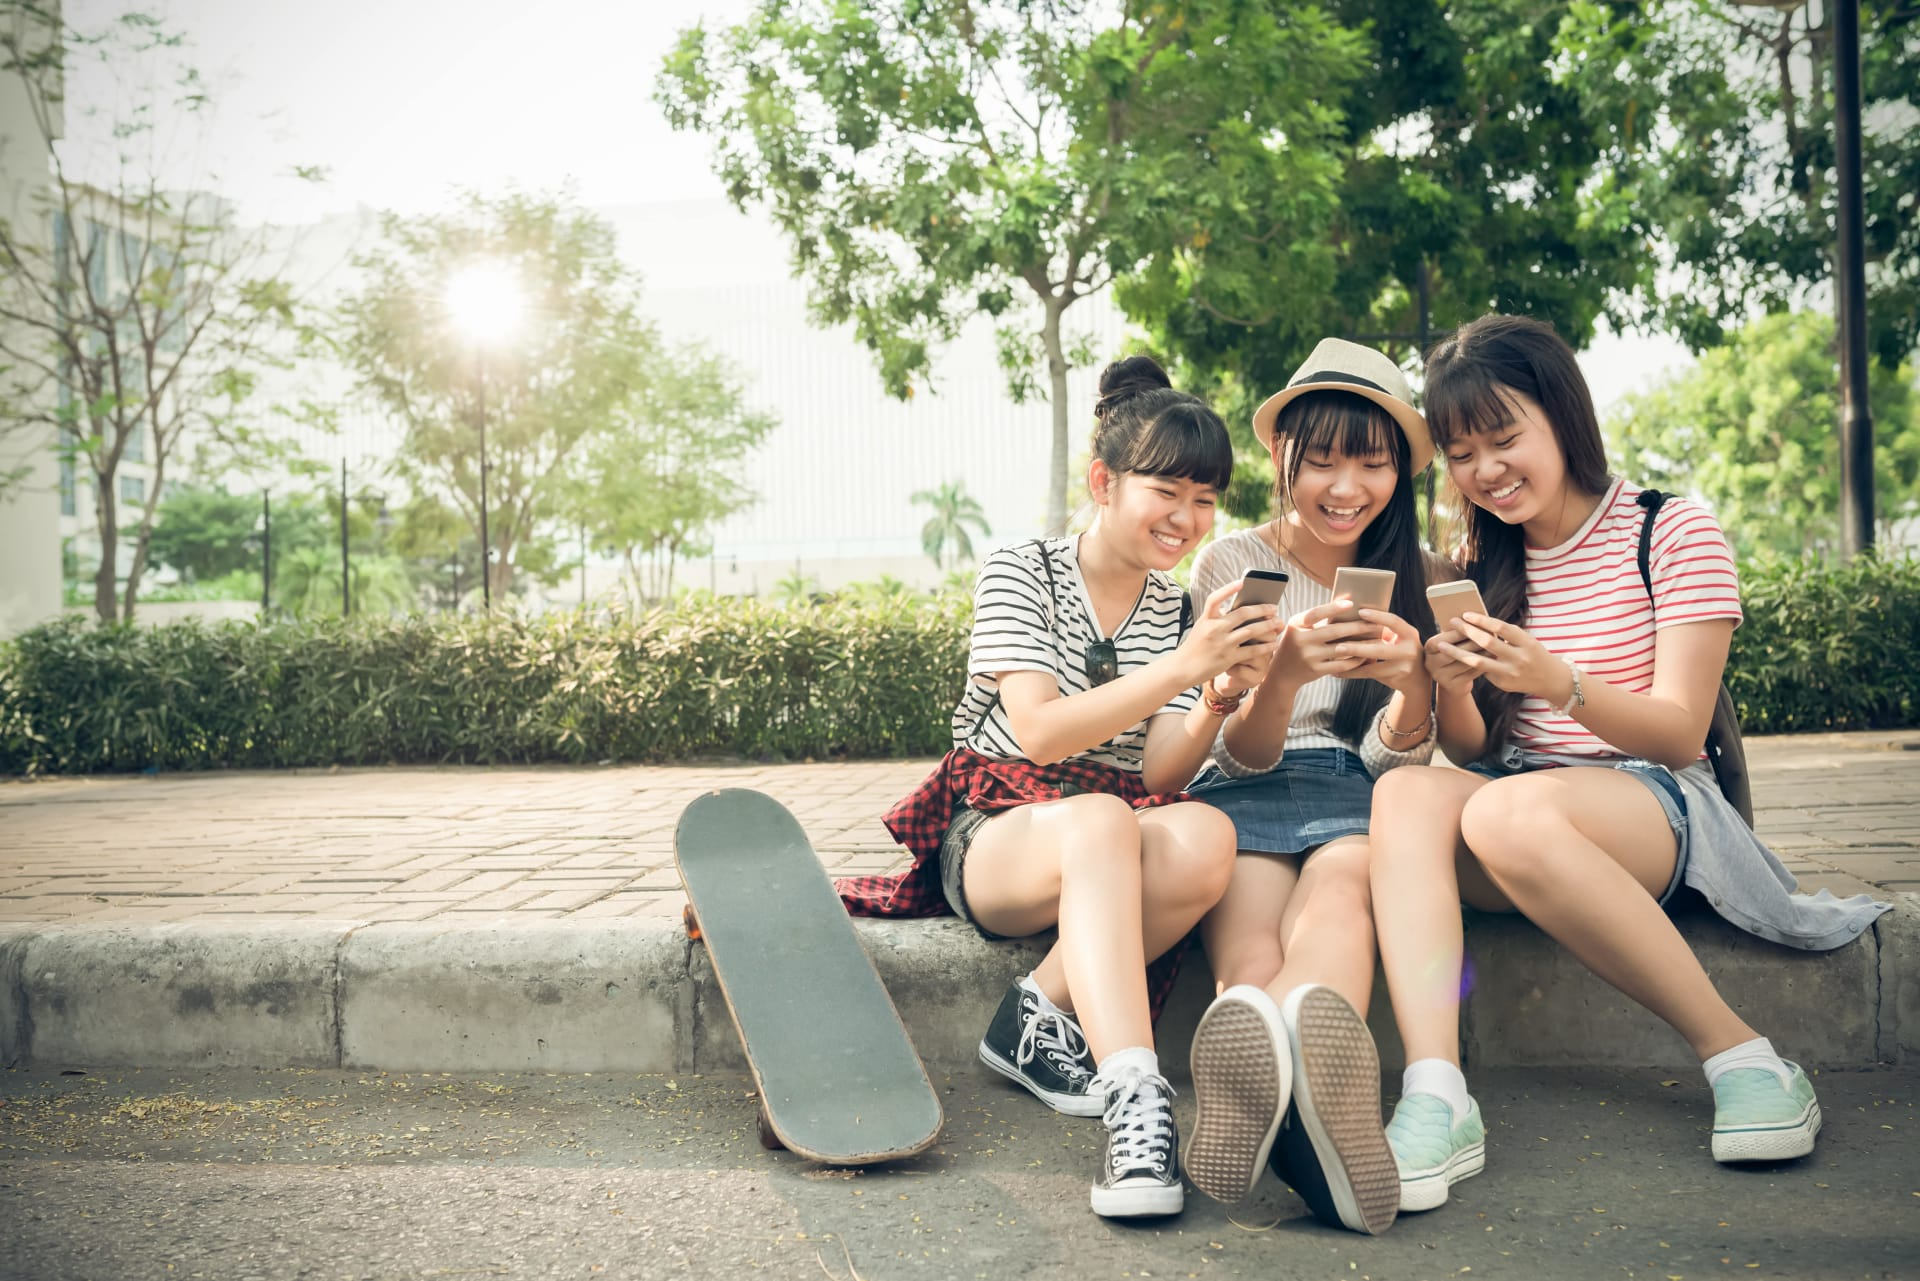 Three girls sitting on a sidewalk and looking at their phones